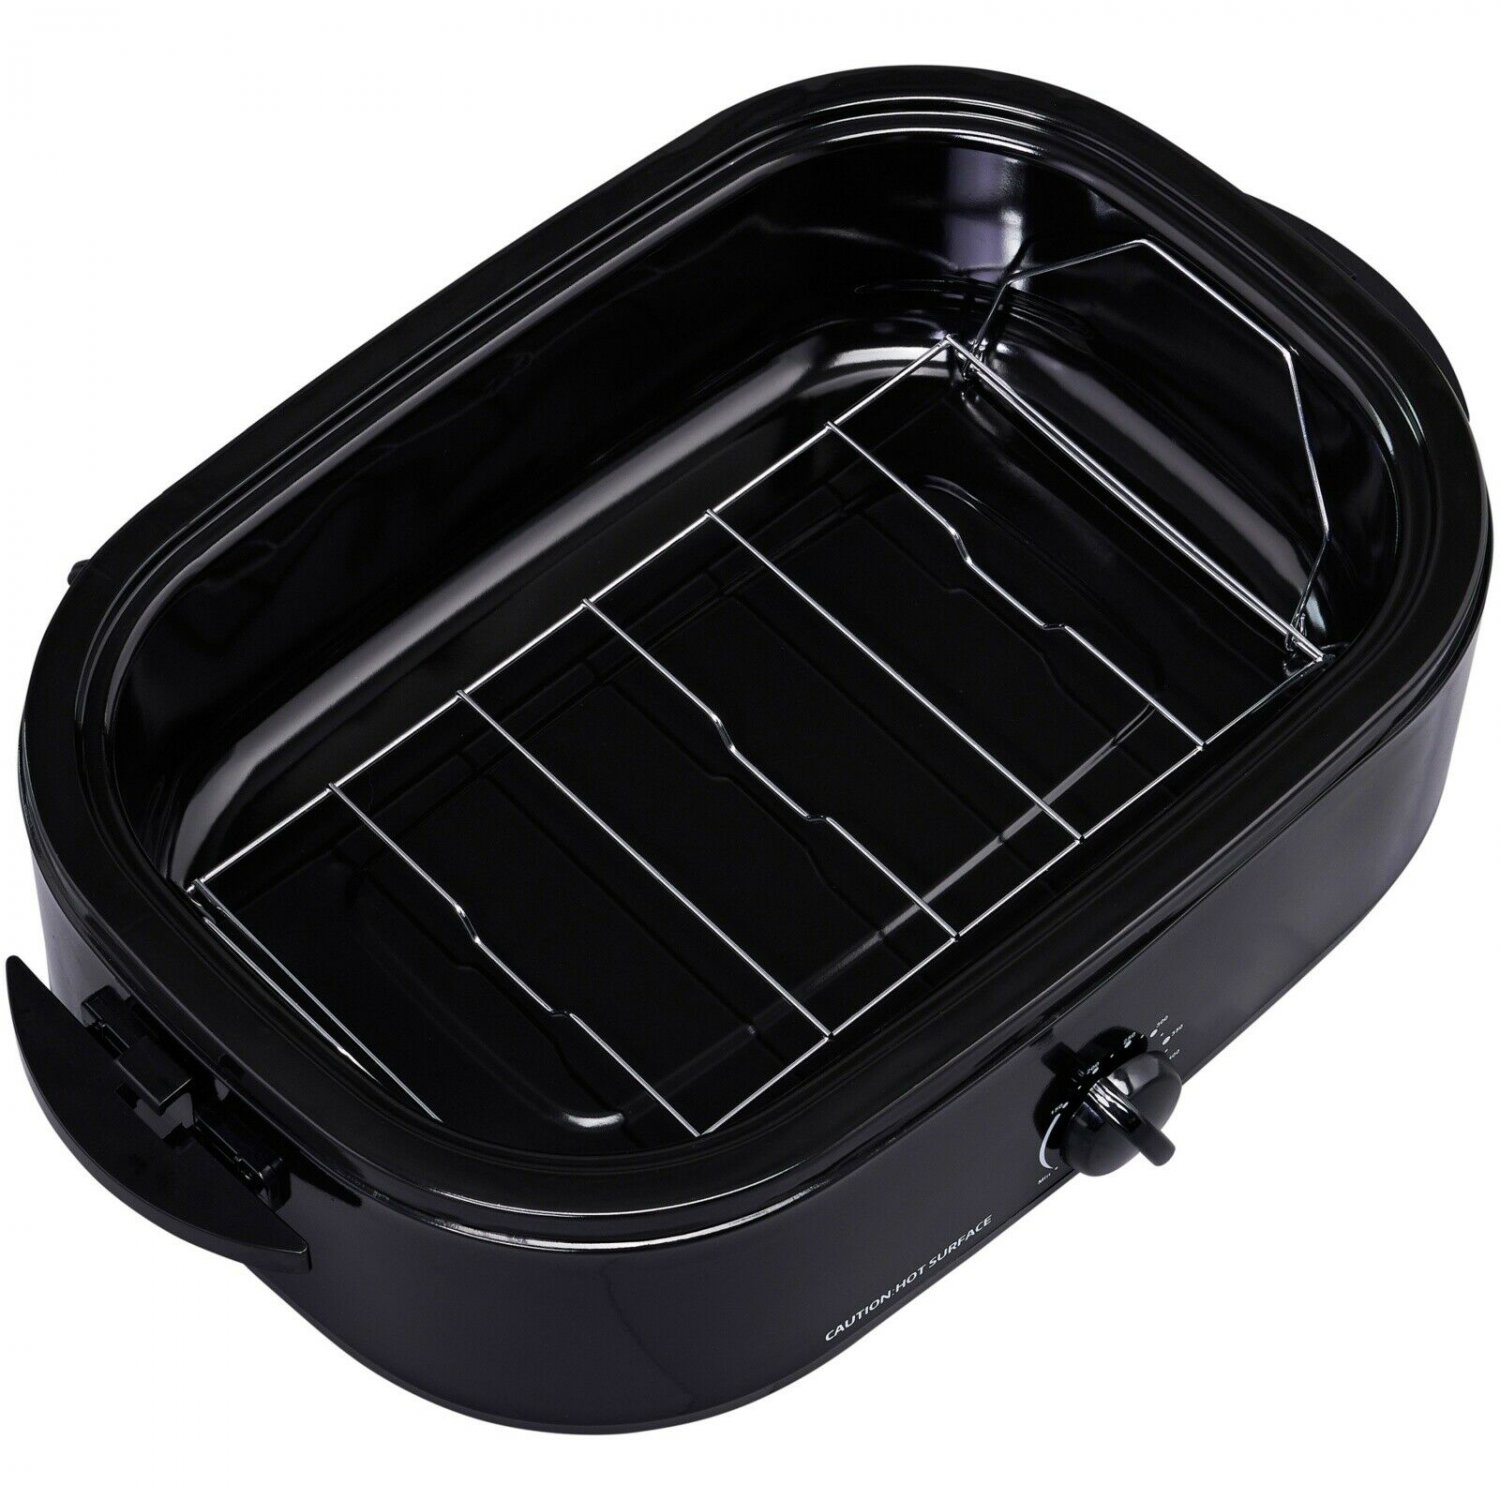 Mainstays 14 Quart Roaster Oven Black with Removable Steel Roasting Rack, 2 Piec